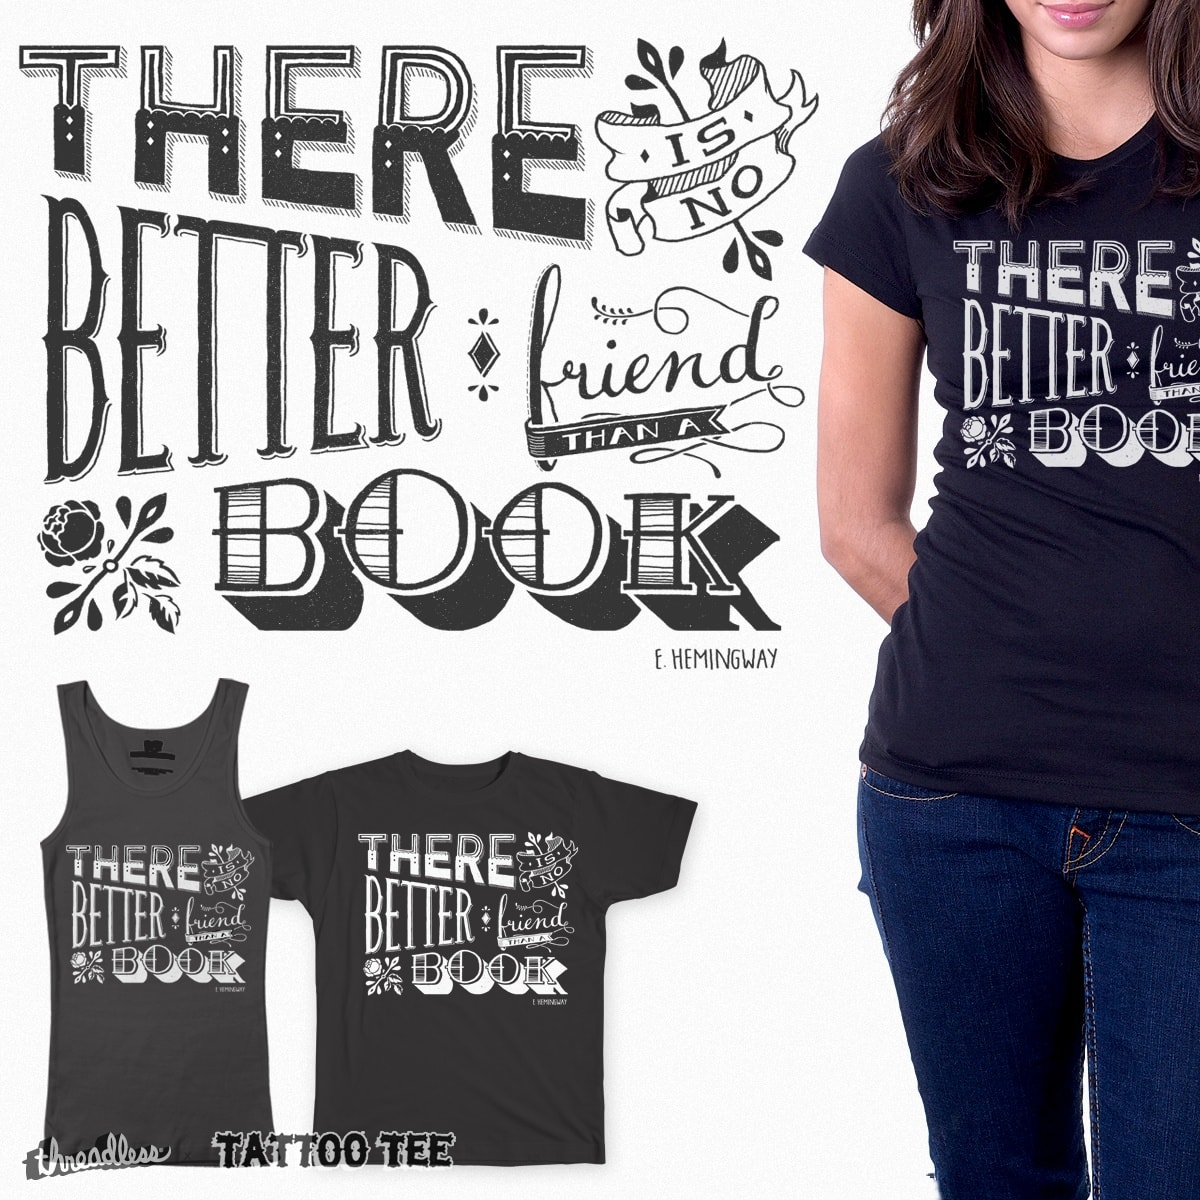 No Better Friend by jillhello on Threadless